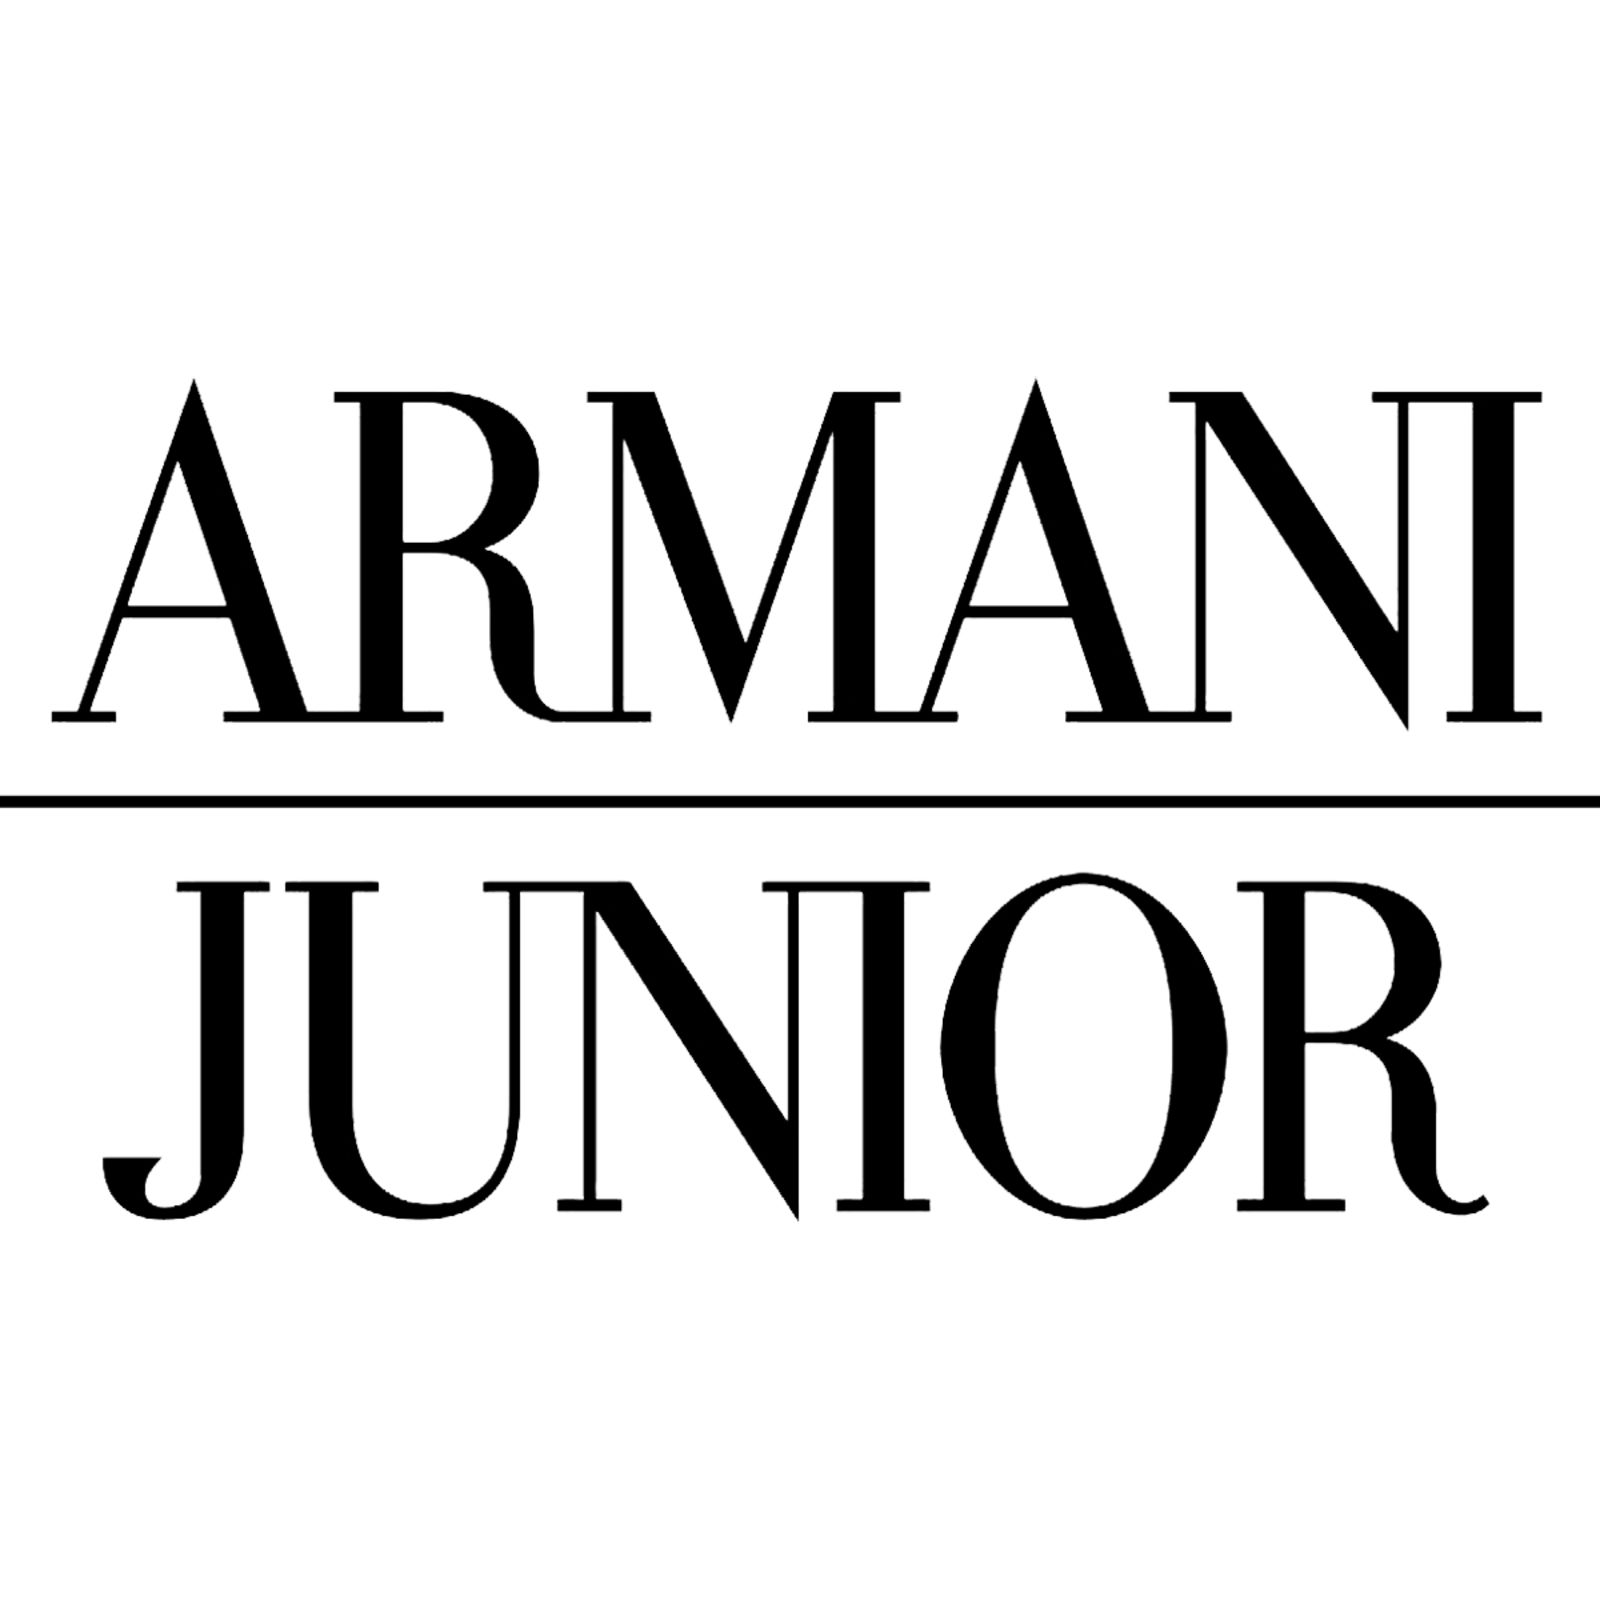 ARMANI JUNIOR (Bild 1)